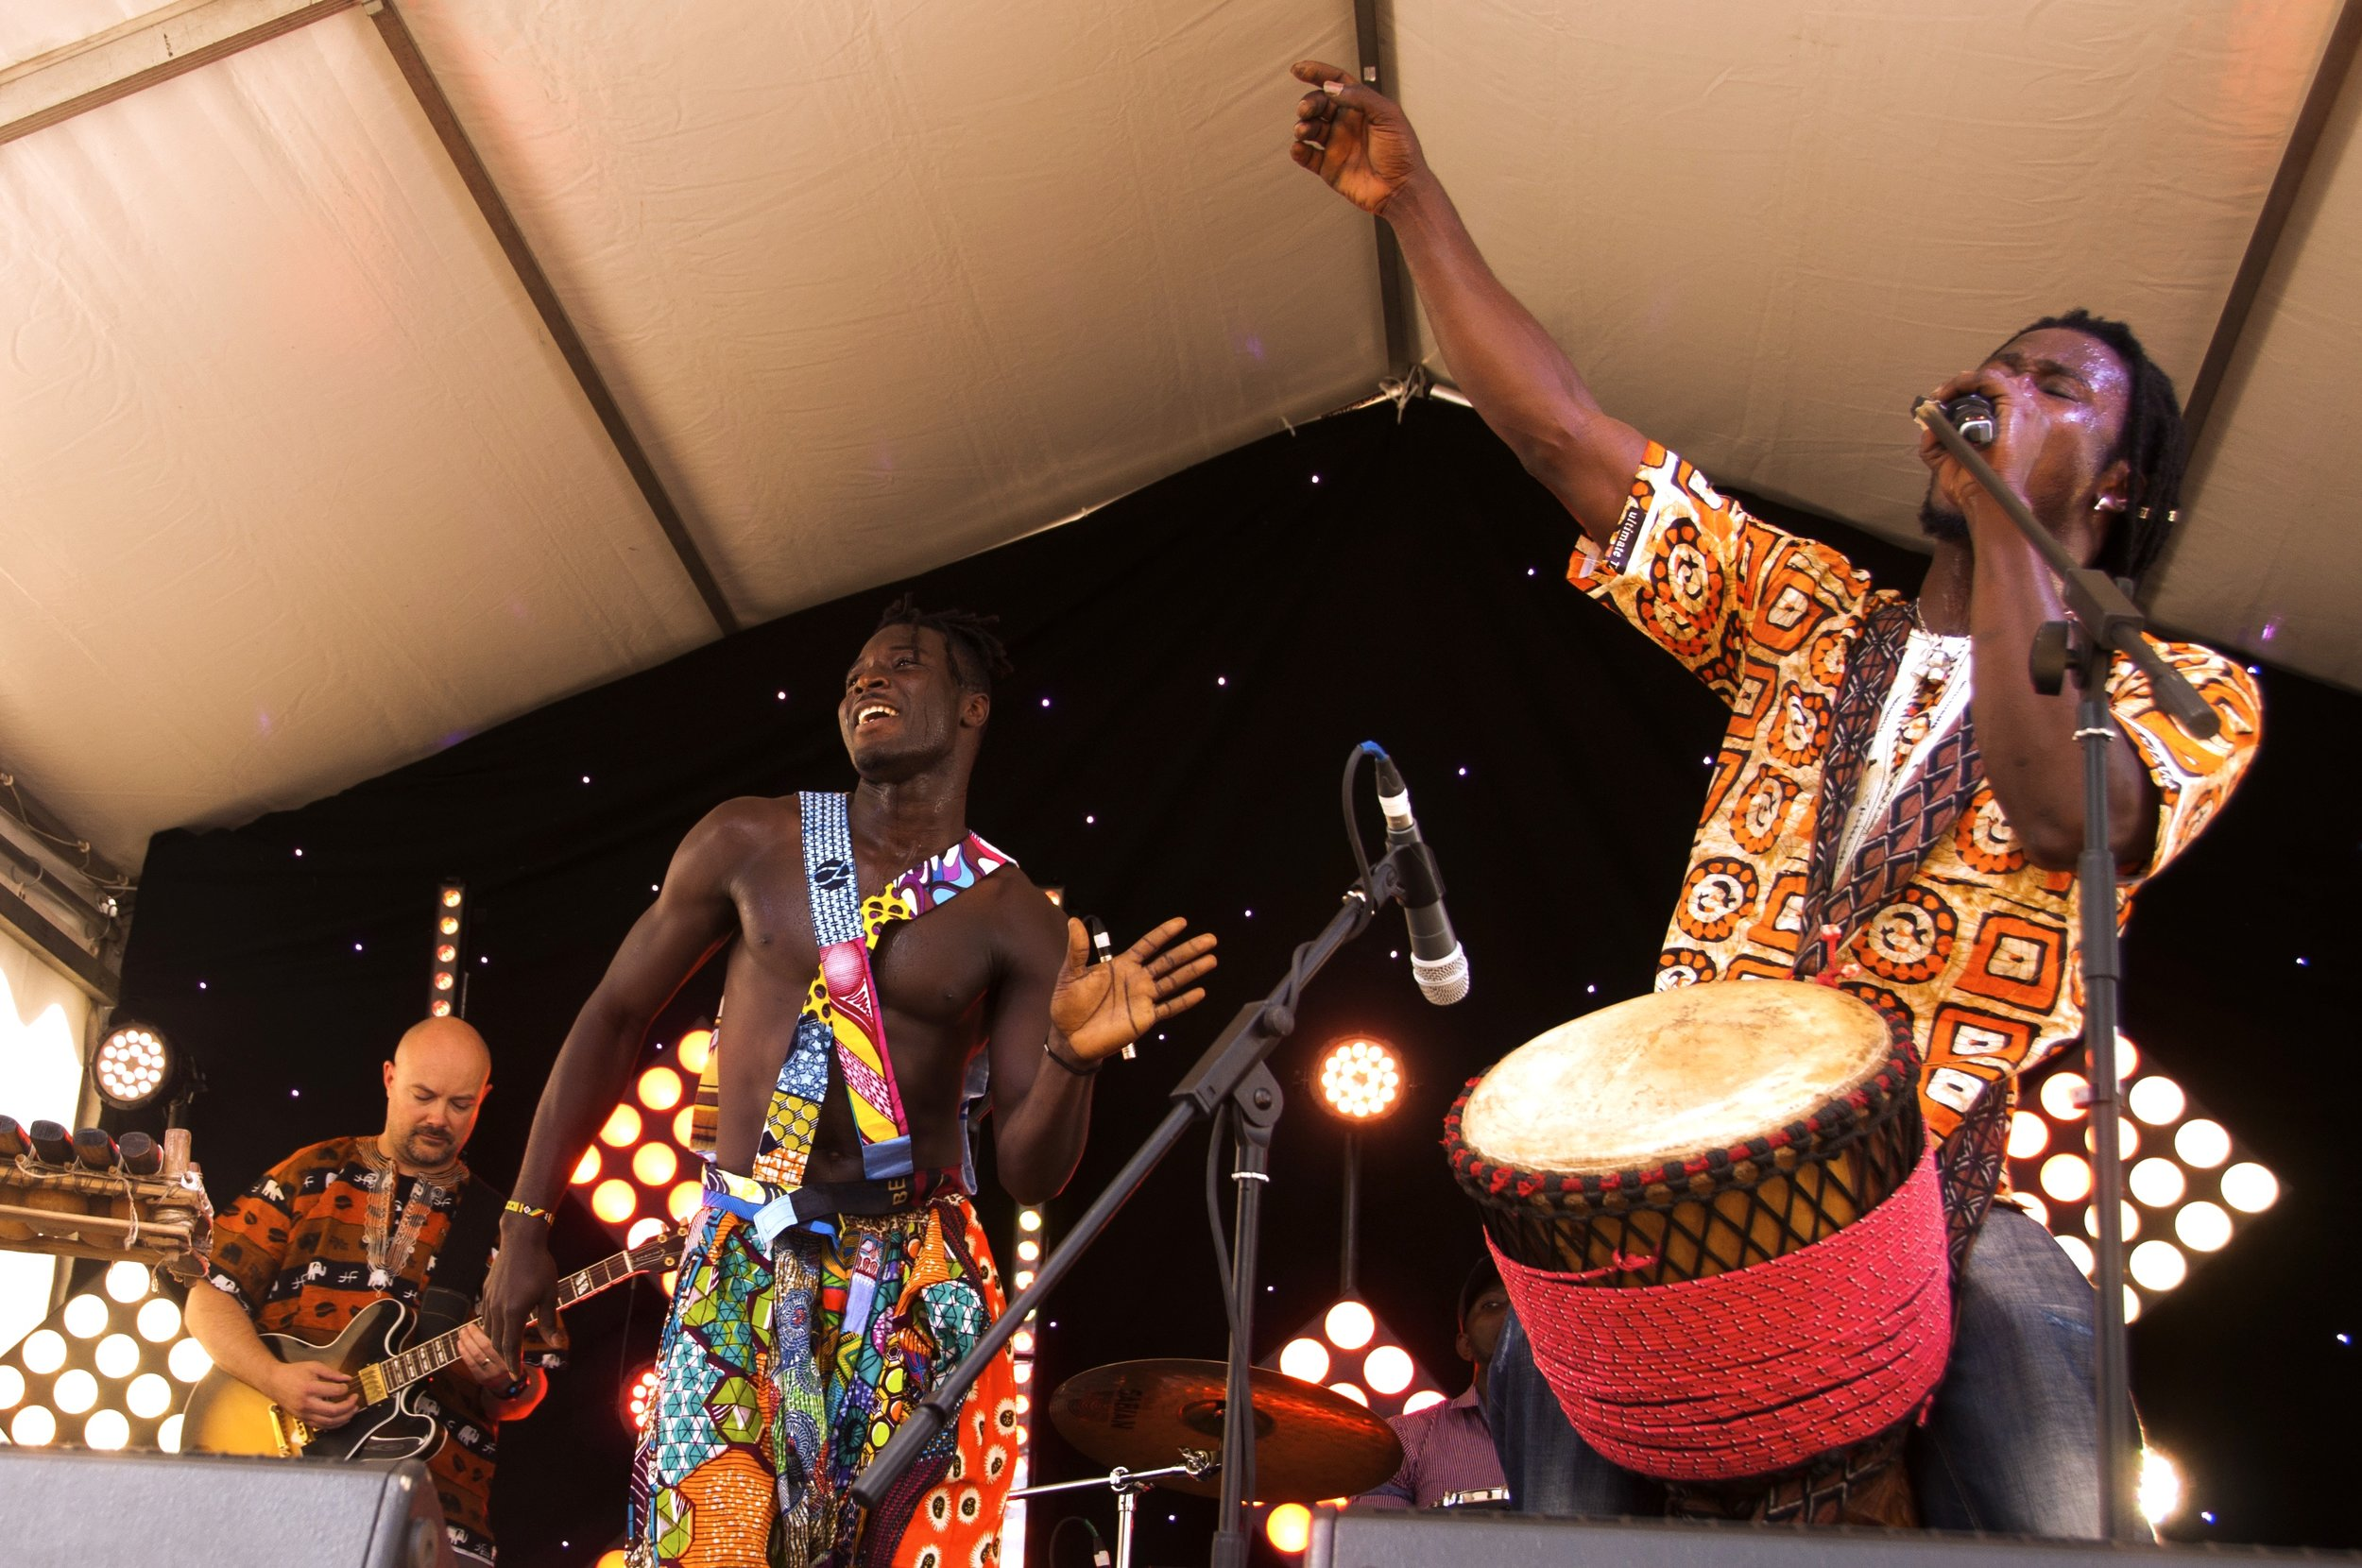 Jarabi presents… - a vibrant blend of both contemporary and traditional music and dance from Guinea, West Africa. We'll take you on a journey from the ancient Manding Empire to modern city life!